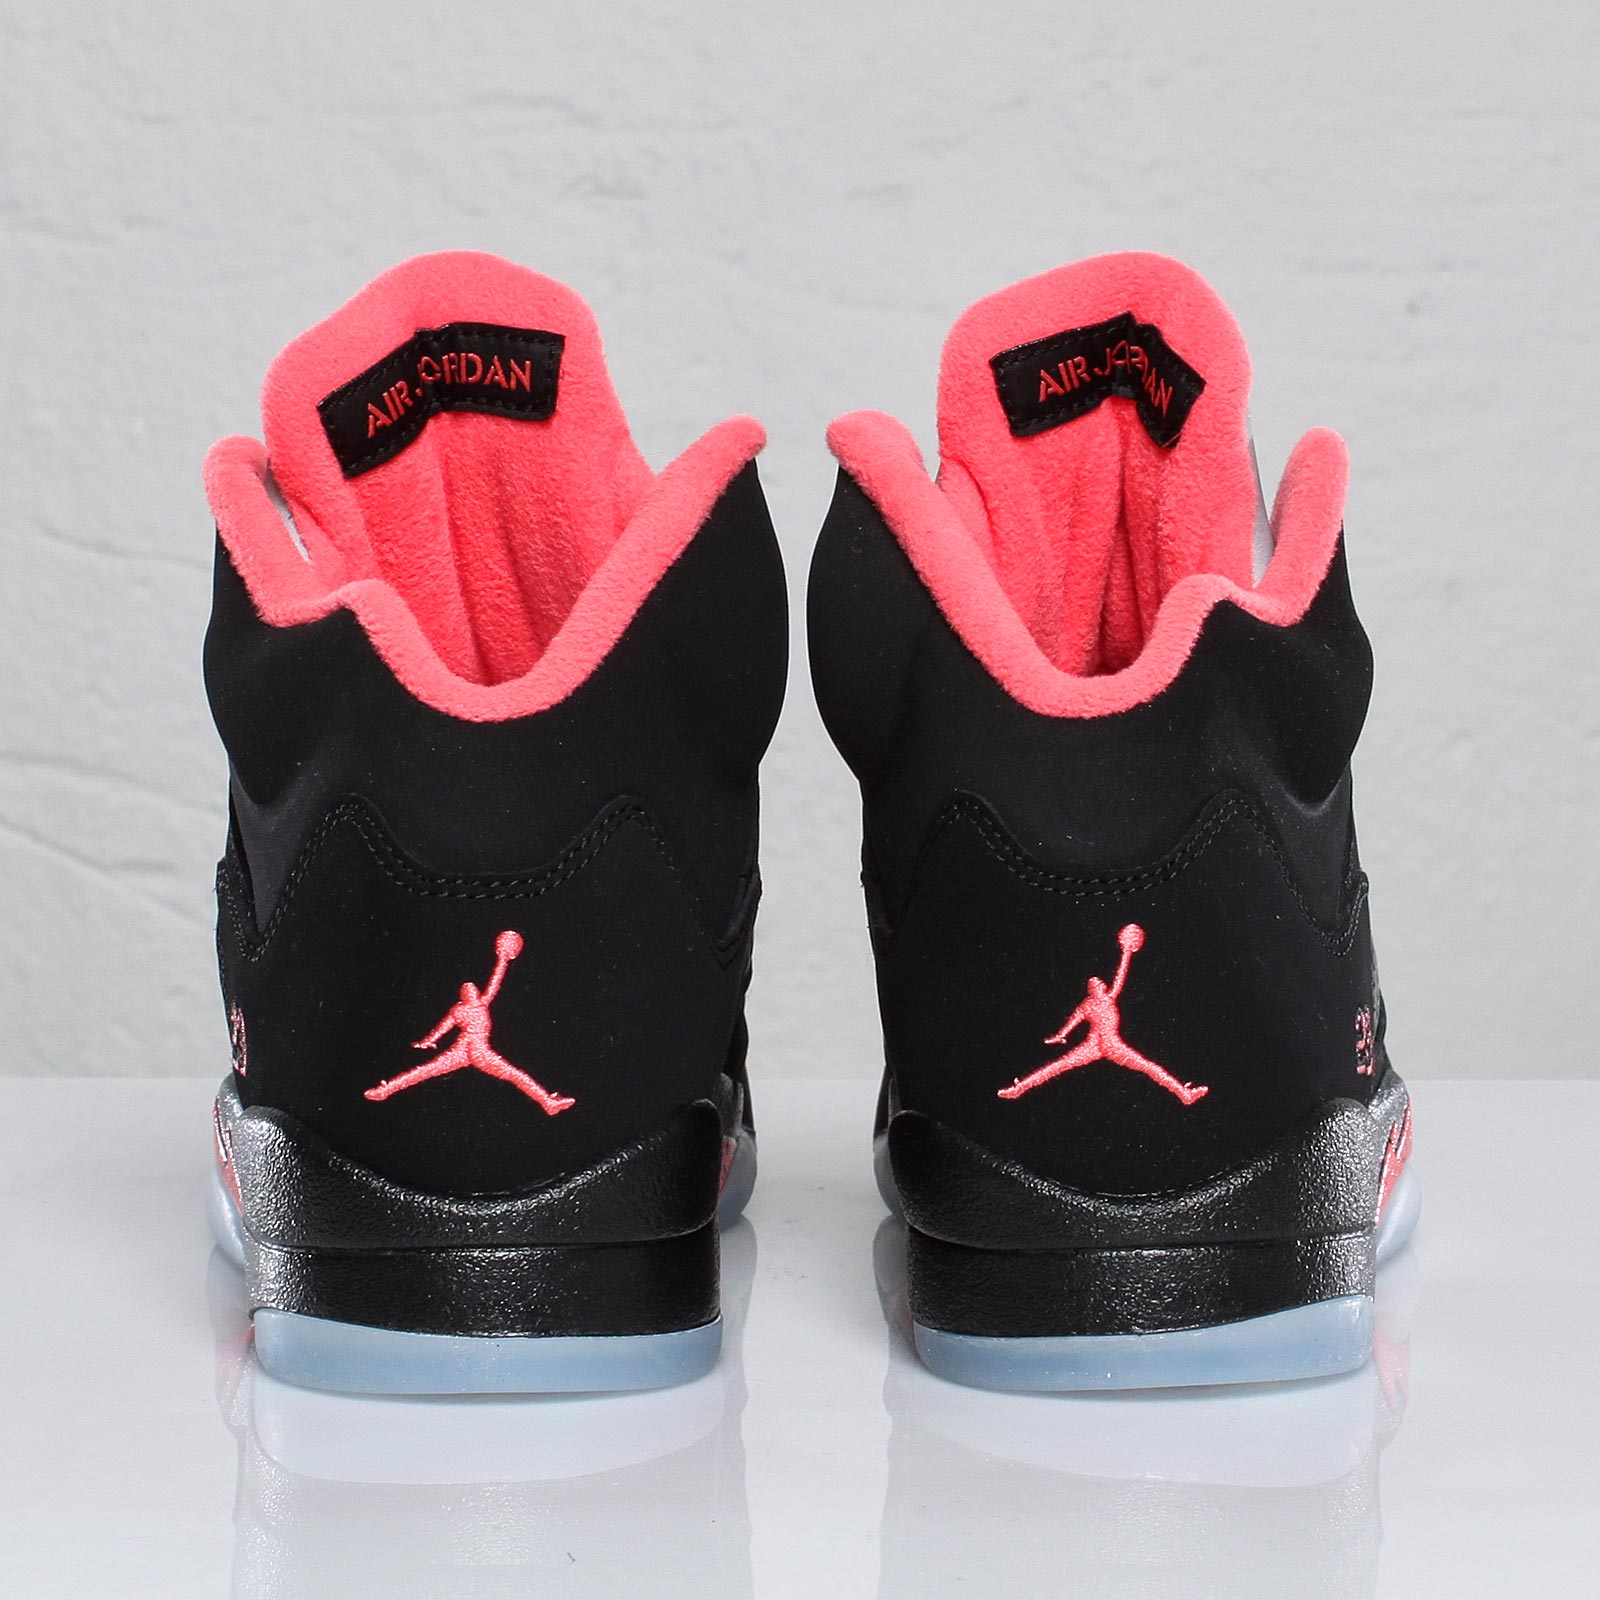 size 40 96518 c4eb1 Jordan Brand Girls Air Jordan 5 Retro (GS) - 101287 ...